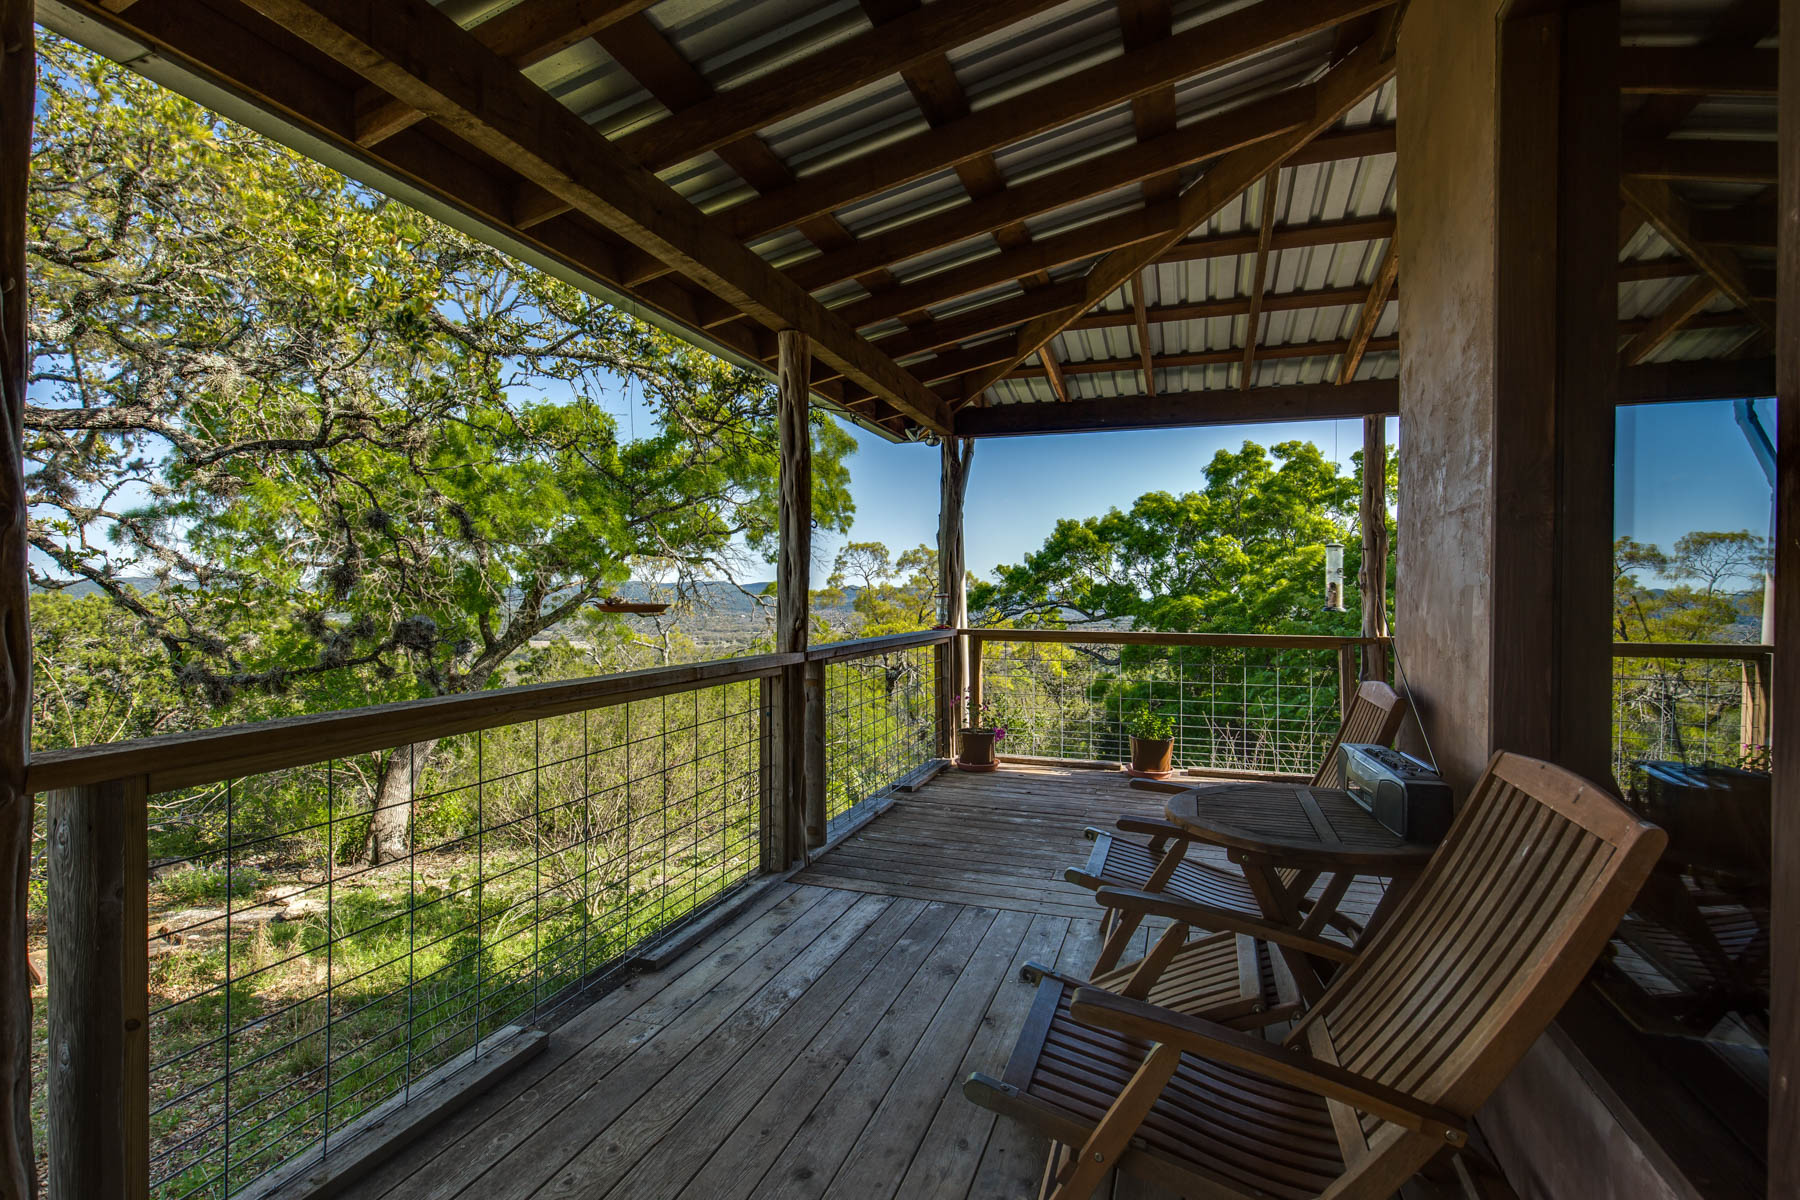 Additional photo for property listing at Tranquil 2-Home Property in Utopia 602 Sunrise Hill Rd Utopia, Texas 78884 Estados Unidos